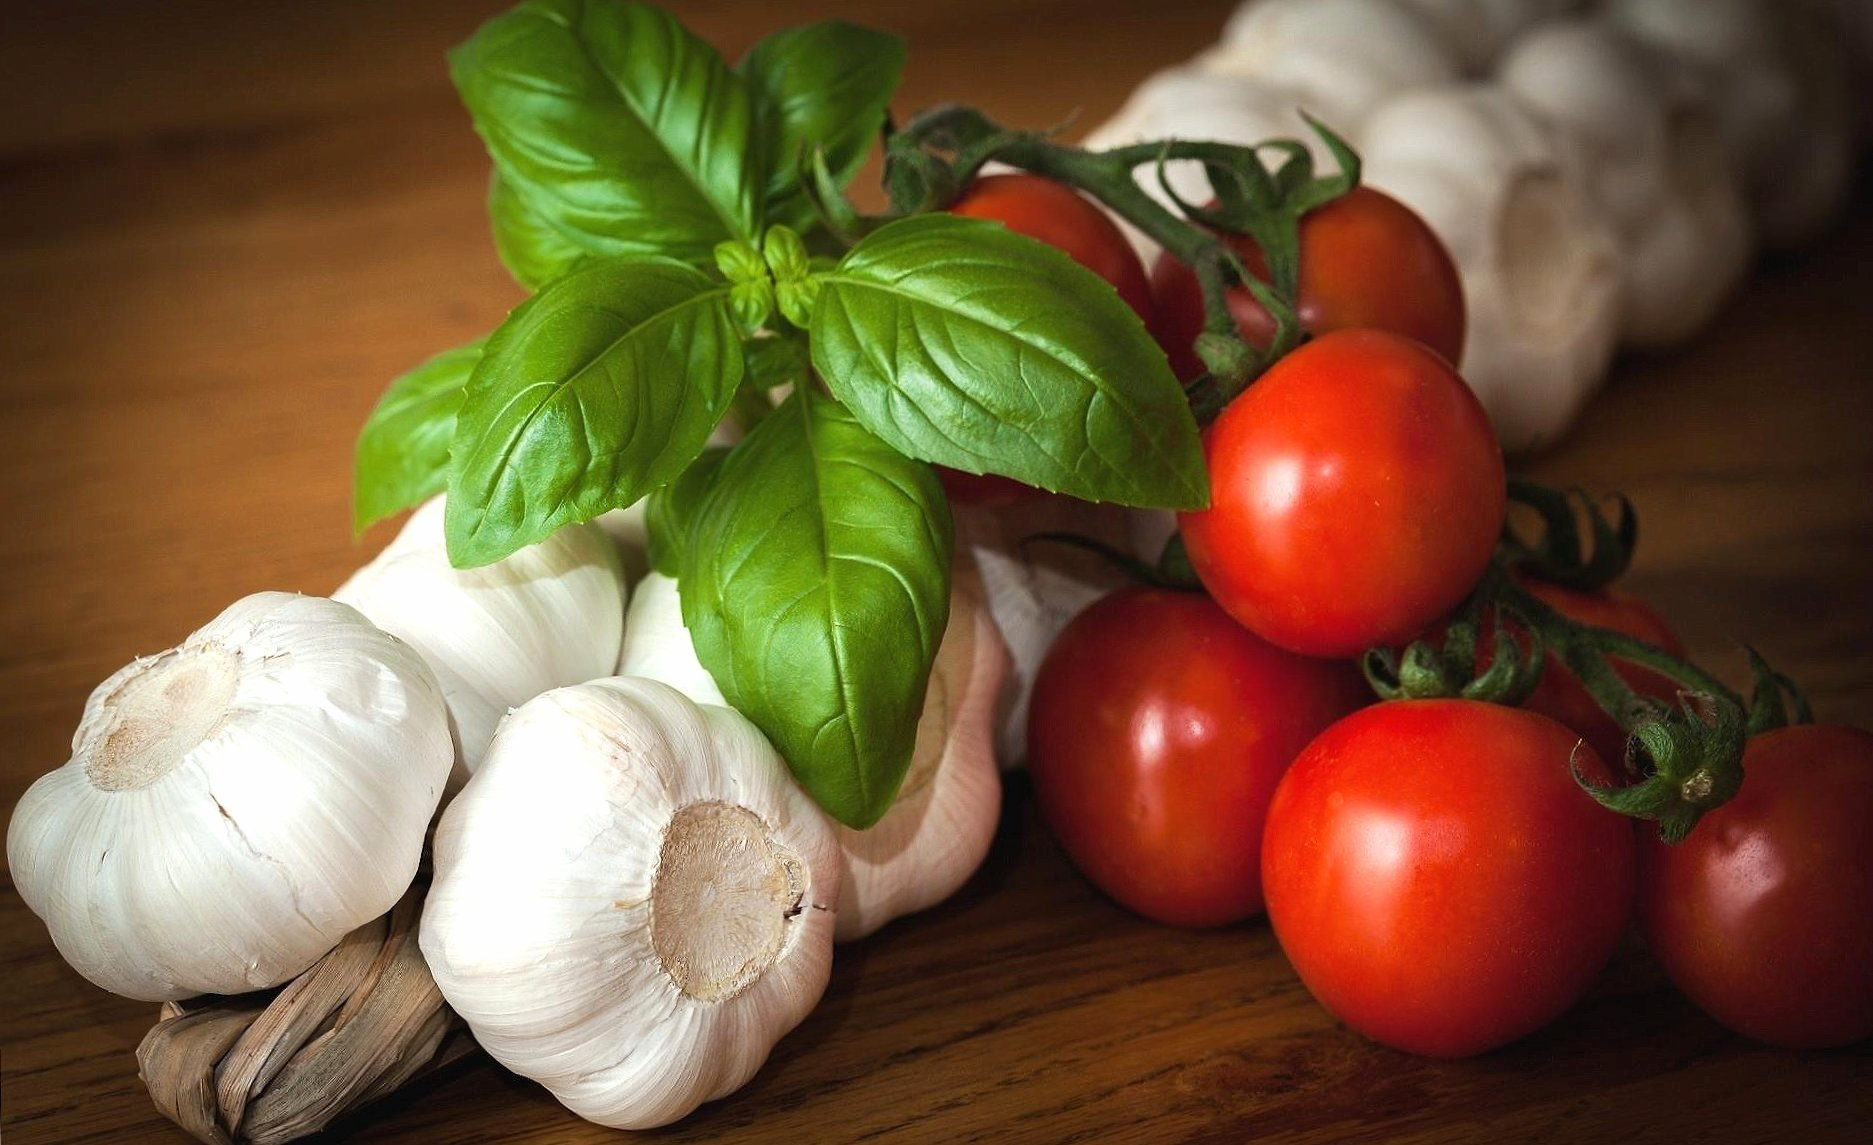 Garlic and tomatoes wallpapers HD quality